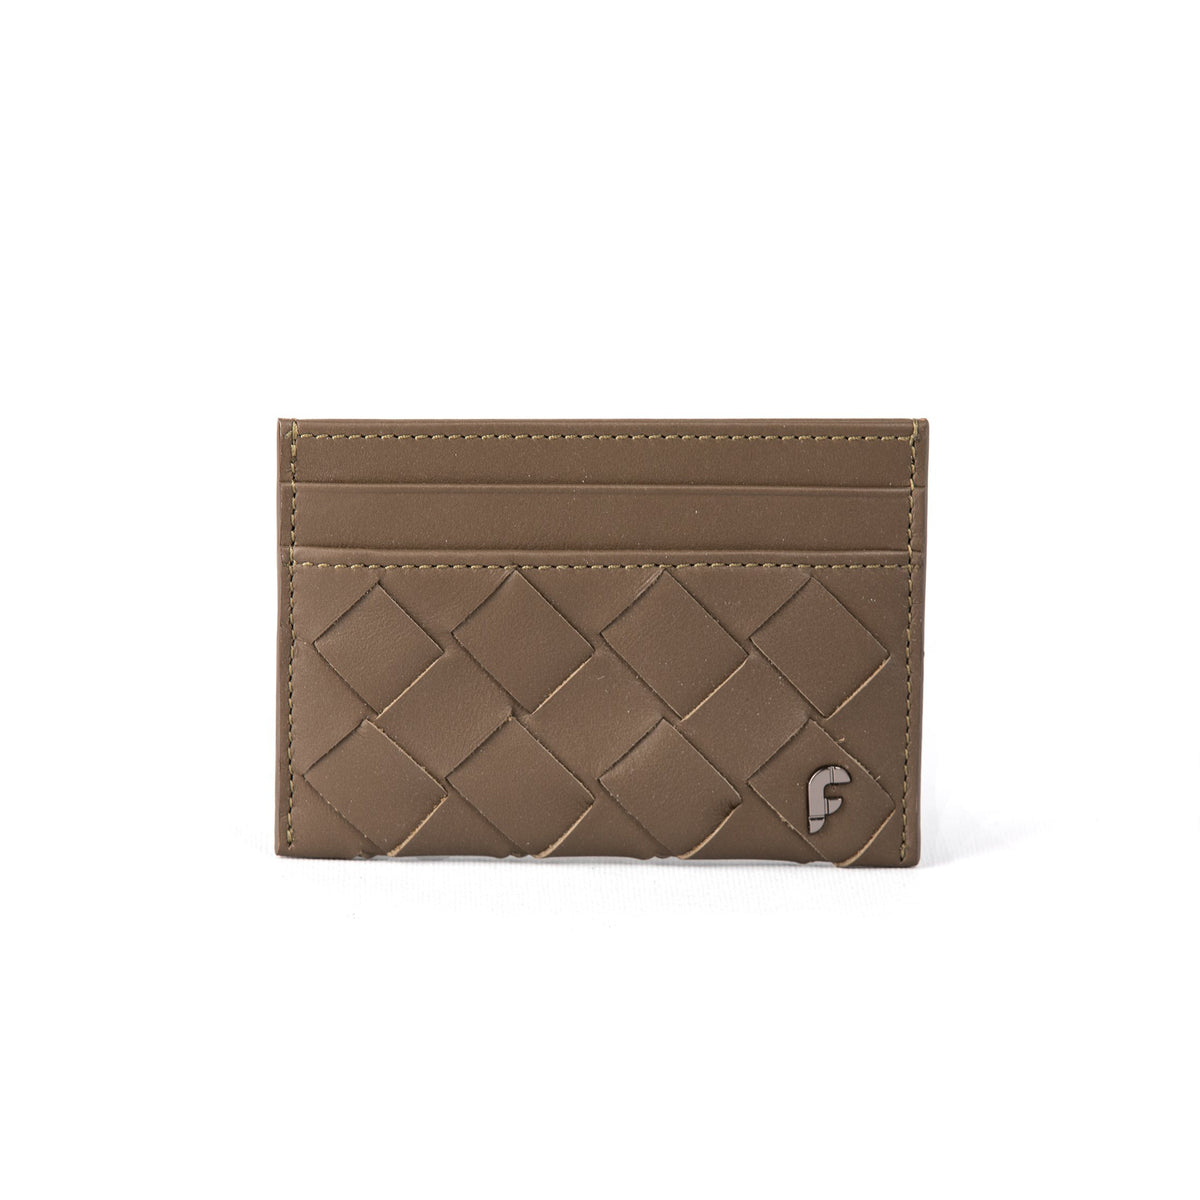 TRUFFLE WEAVING MATTE CREDIT CARD HOLDER (FP105)